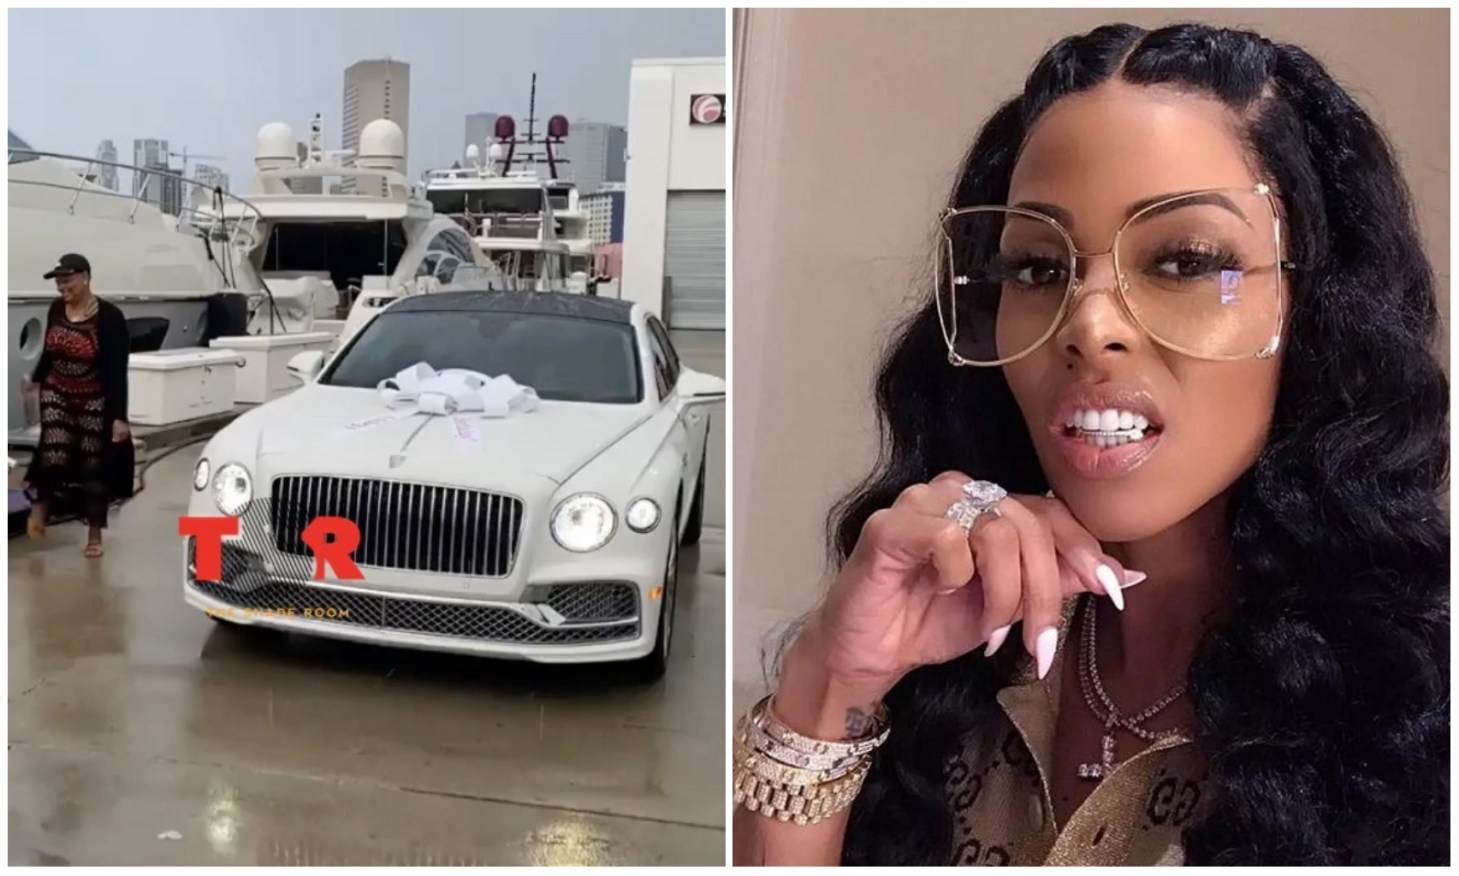 Rapper Gucci Mane's wife Keyshia Ka'oir surprise mum with customized Bentley for her 60th birthday (Video)